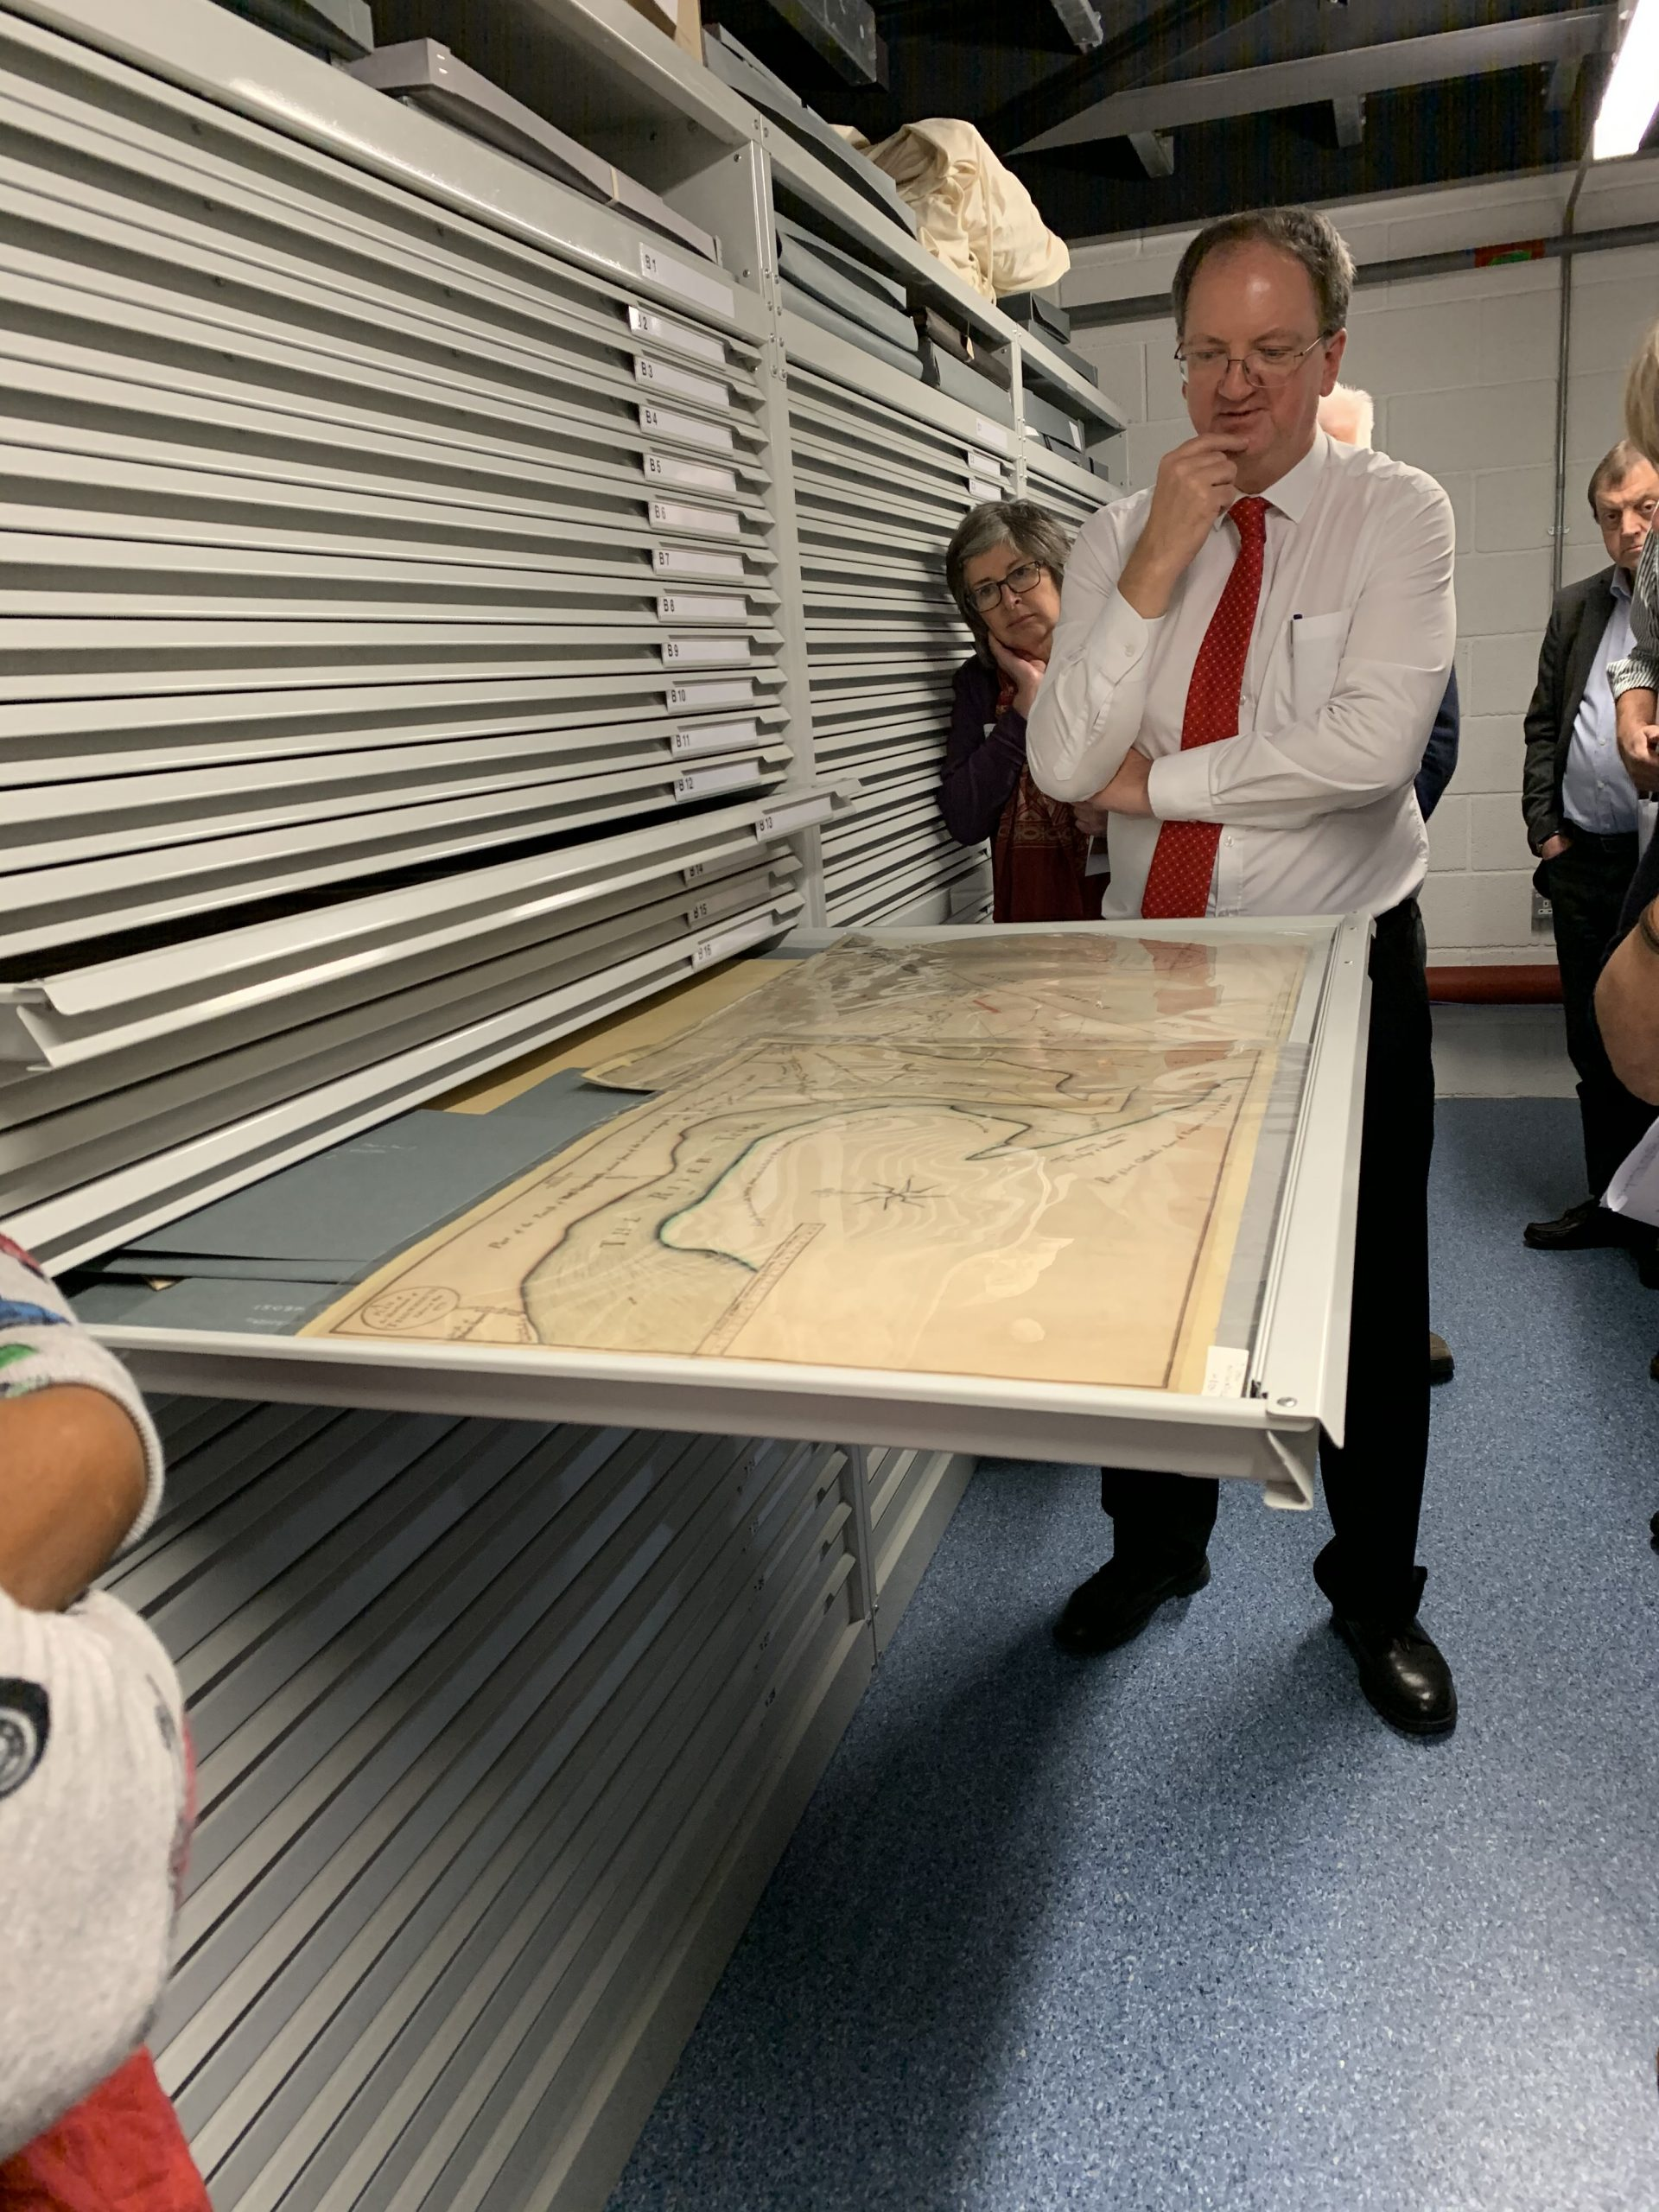 Brian, wearing a white shirt and red tie, stands in front of a large archival draw which he has opened to reveal an antique map of Devon. Volunteers stand behind him, looking in interest.